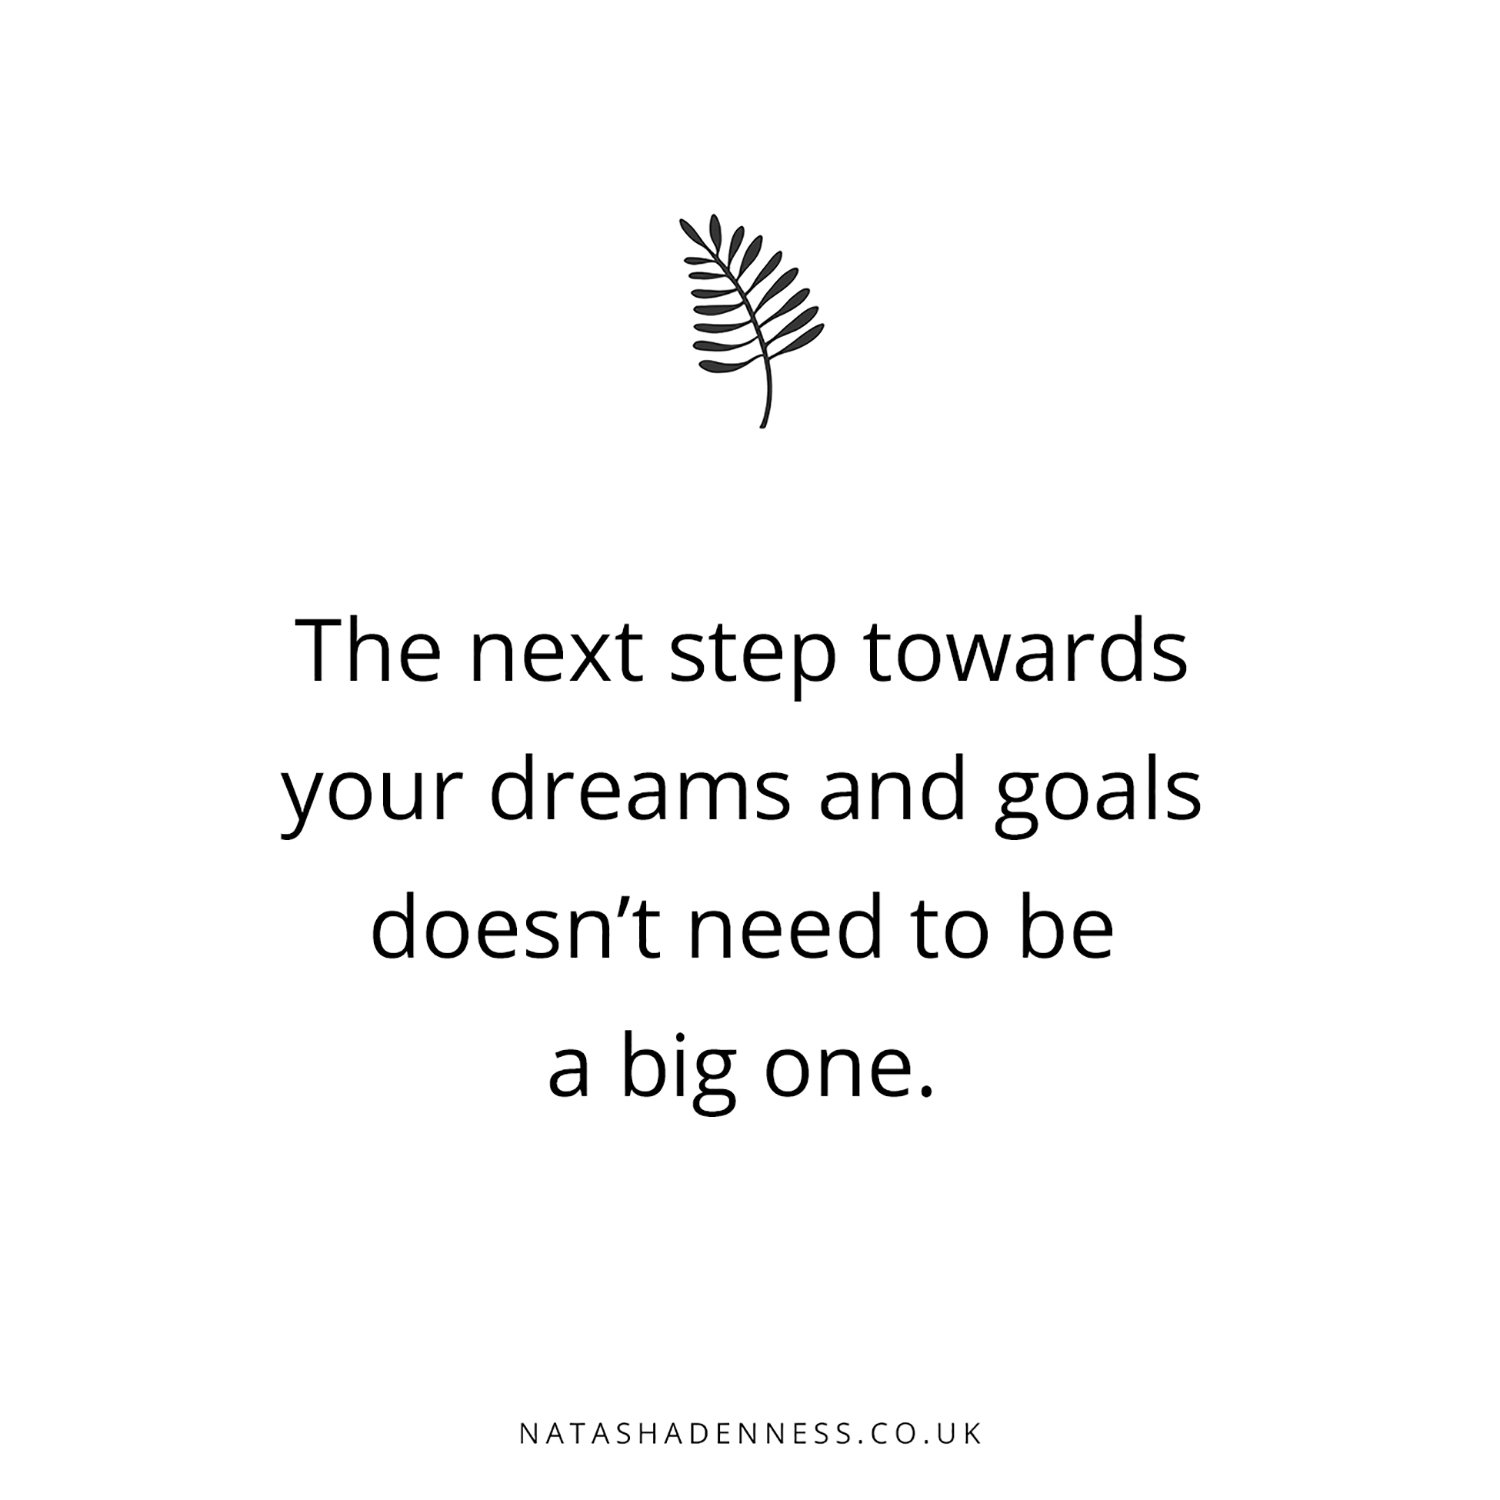 The next step towards your dreams and goals doesn't need to be a big one | Natasha Denness Coaching